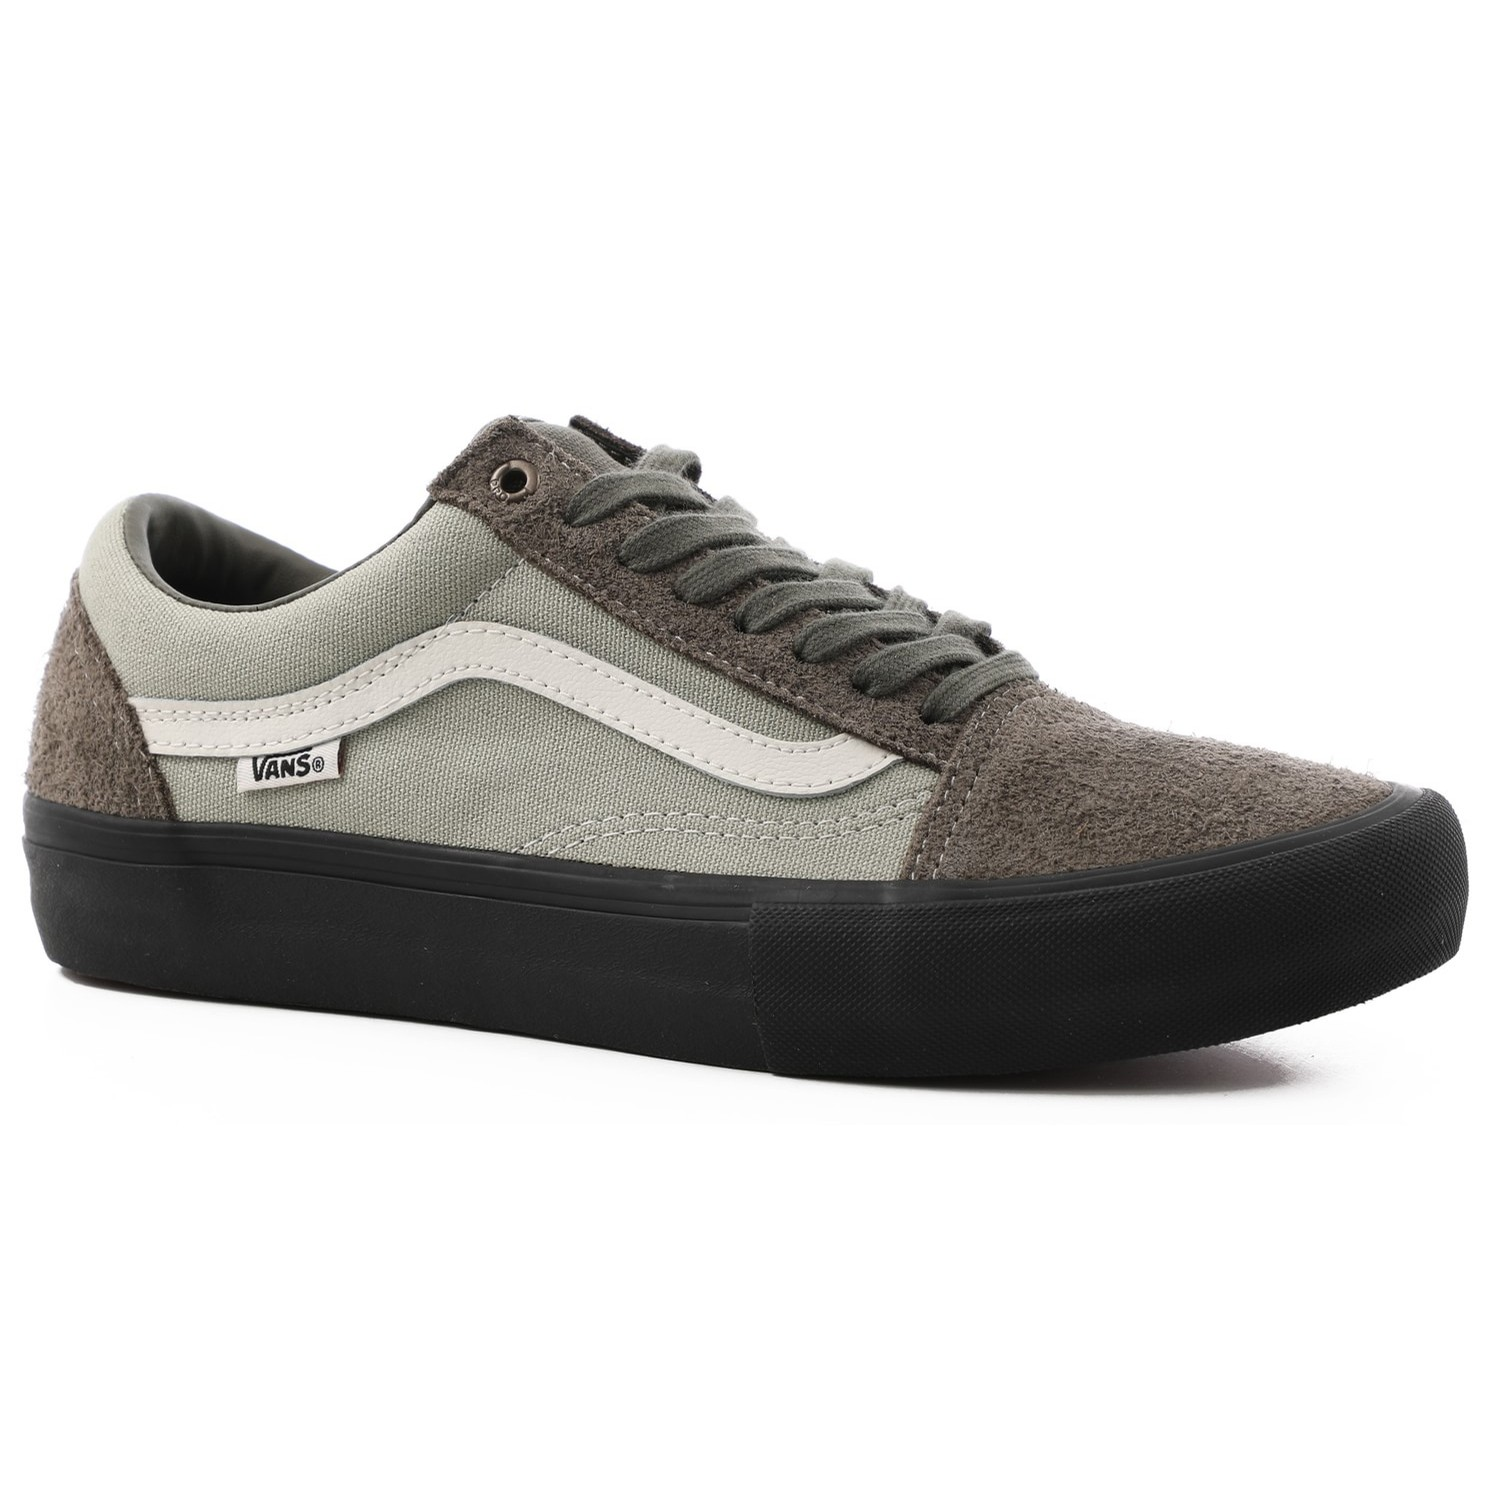 Old Skool Pro (Dusty Olive/Sage)